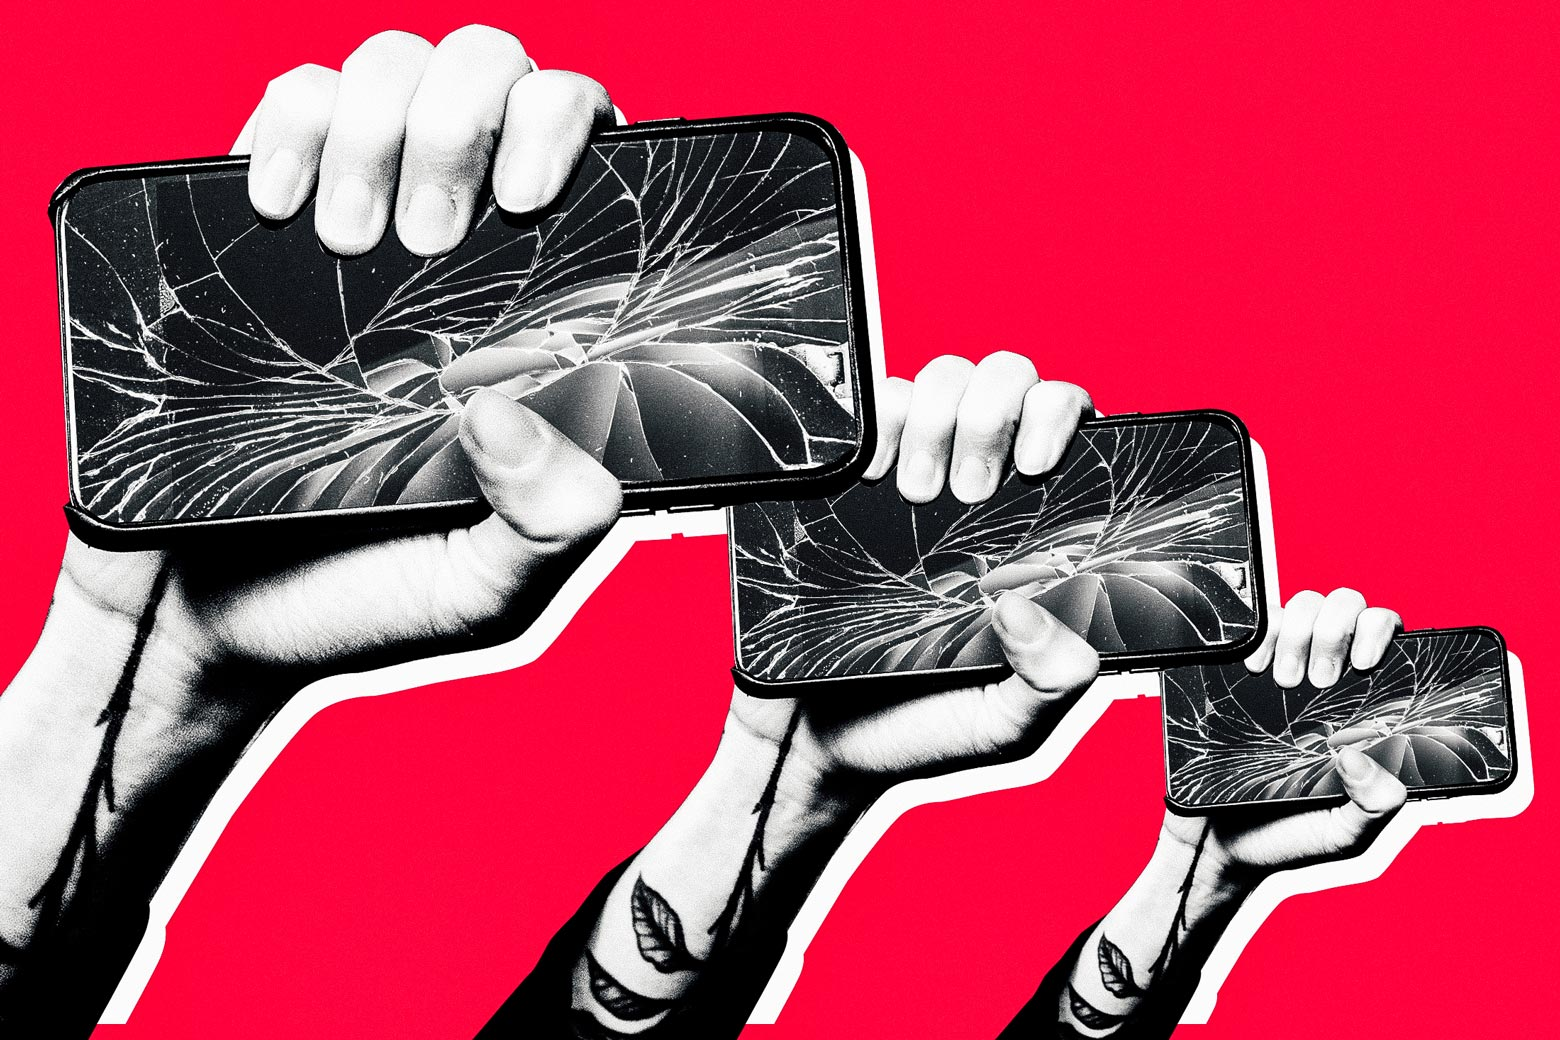 Revolutionary hands holding broken iPhones.